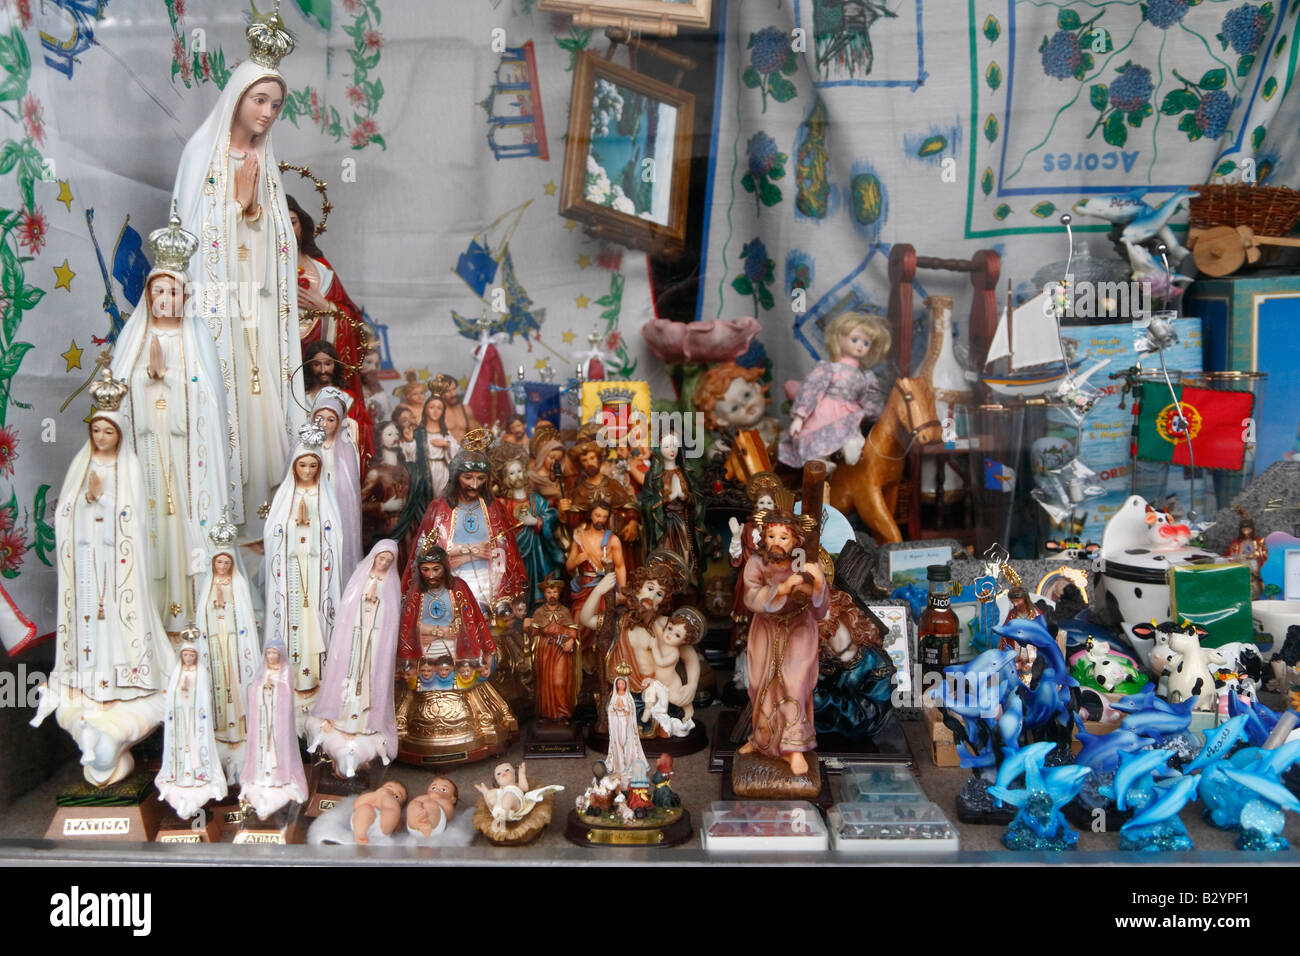 Small shop in the Azores islands selling figurines of Our Lady of Fatima (left), and other kinds of memorabilia - Stock Image